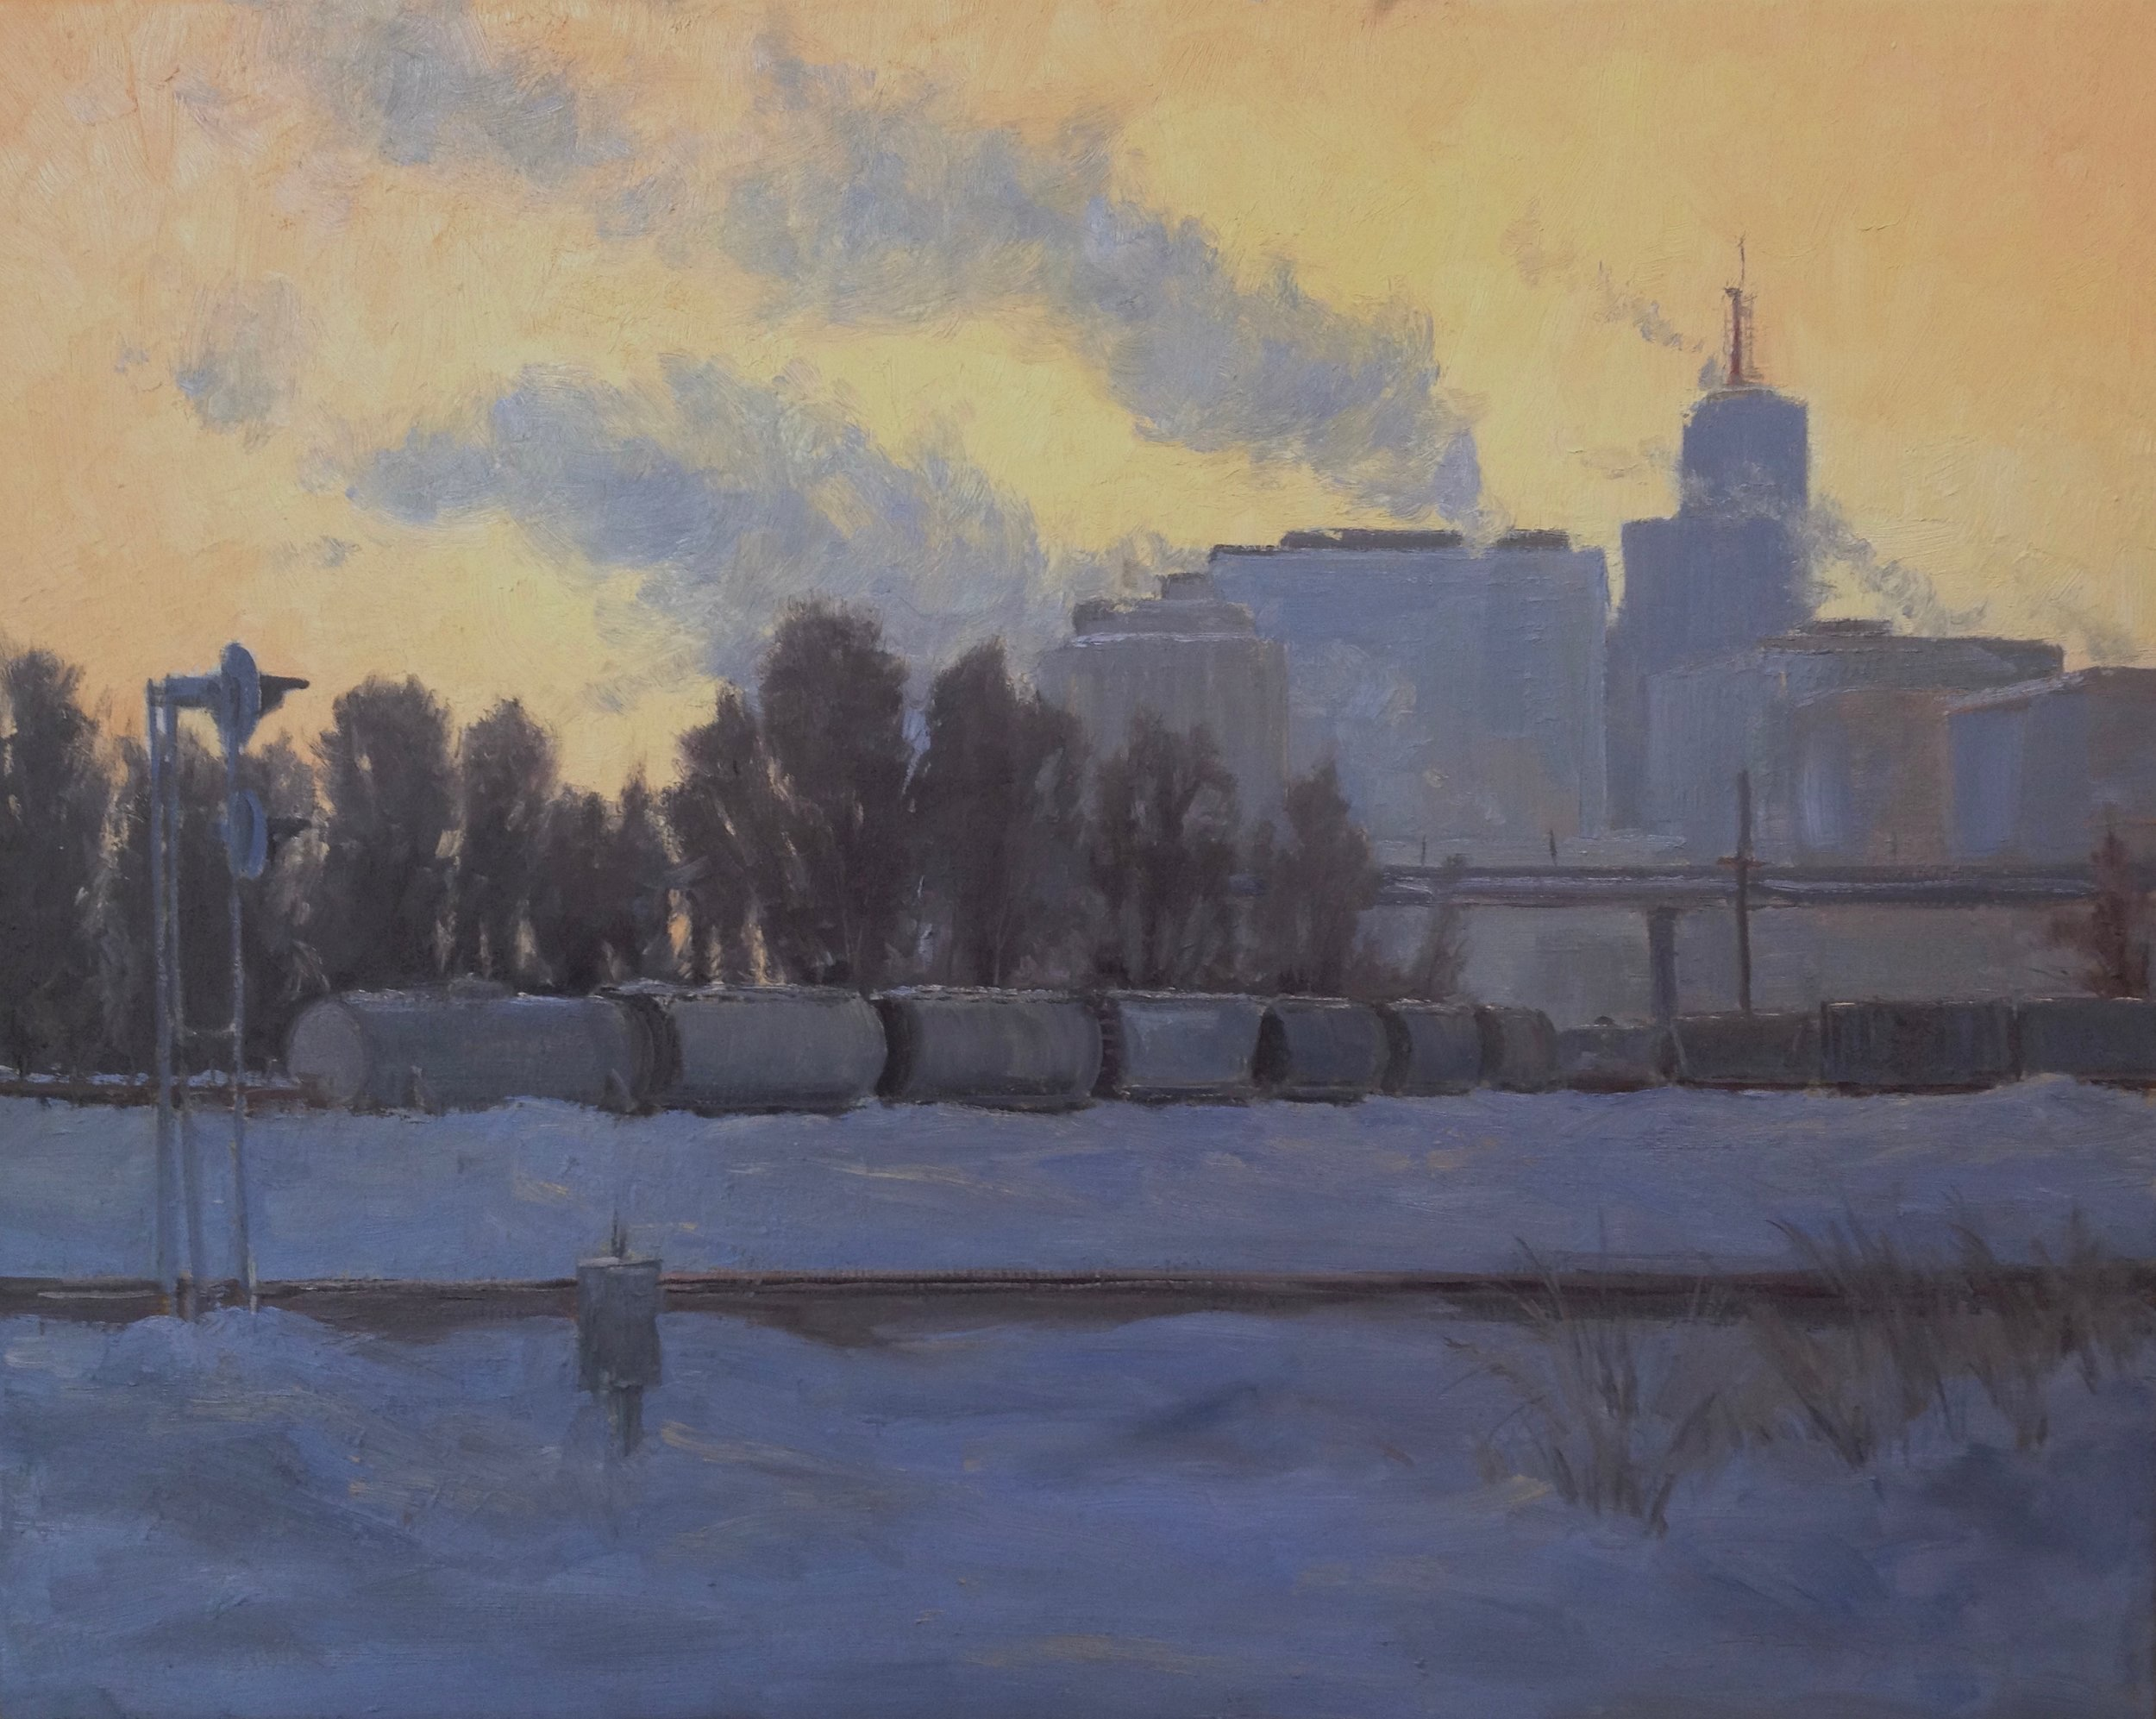 """Winter Evening"" 24""x30"", Oil on Linen, Private Collection   Honorable Mention  Extremely Minnesotan, Robbin Gallery, 2014"